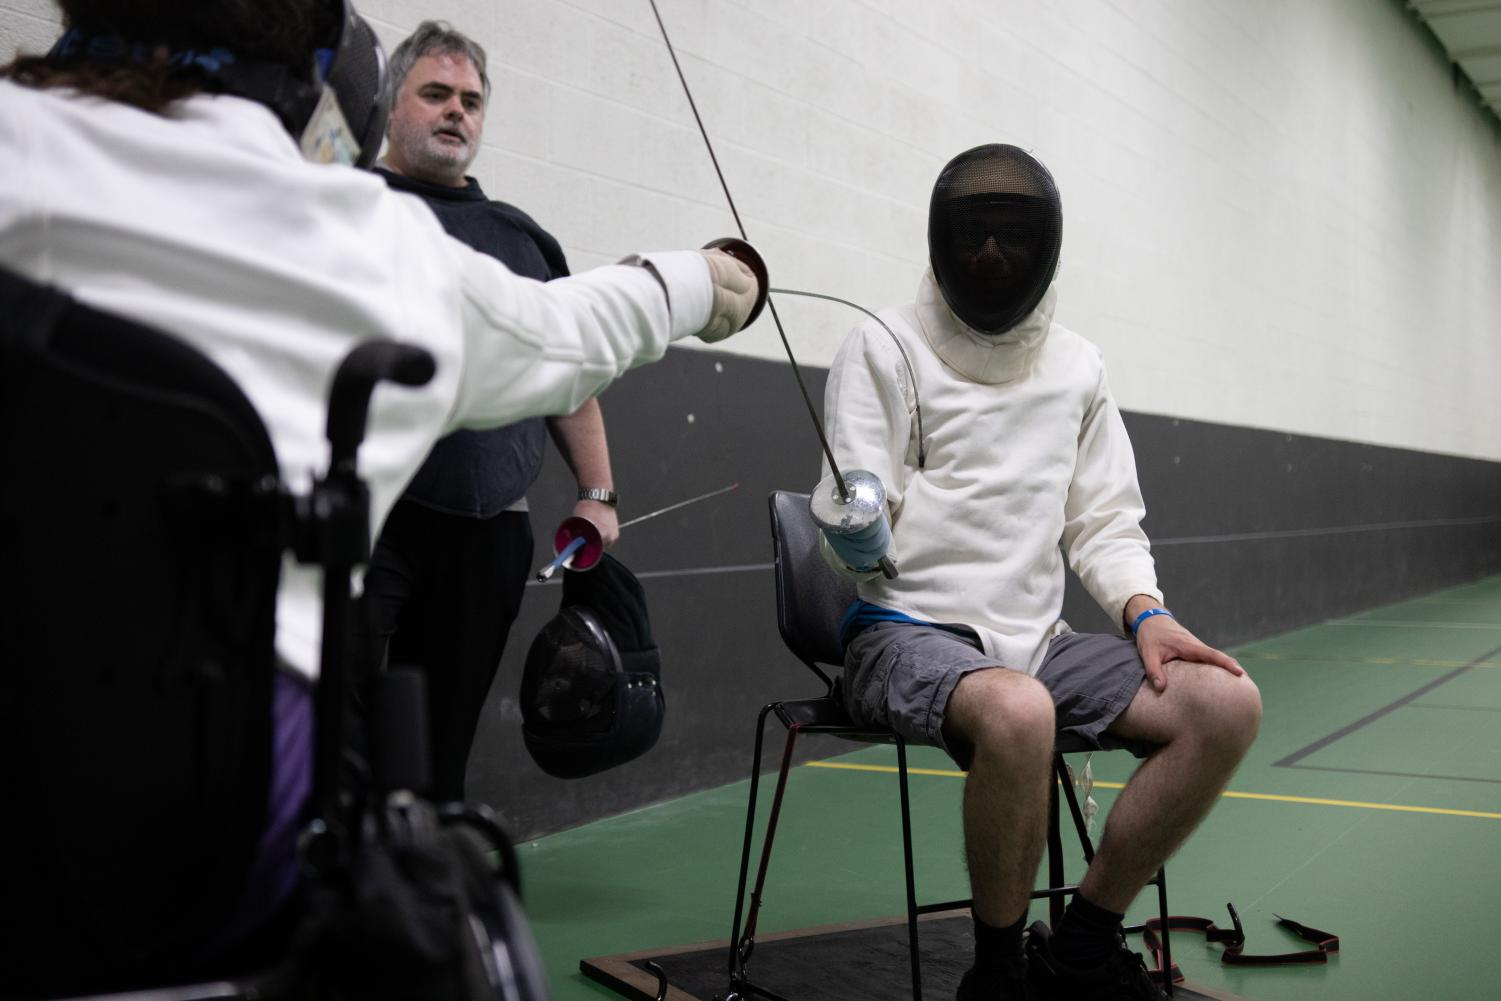 Parafencing, or fencing while using a wheelchair, is the first accessible club sport at OU, according to team captain Alissa Bandalene.